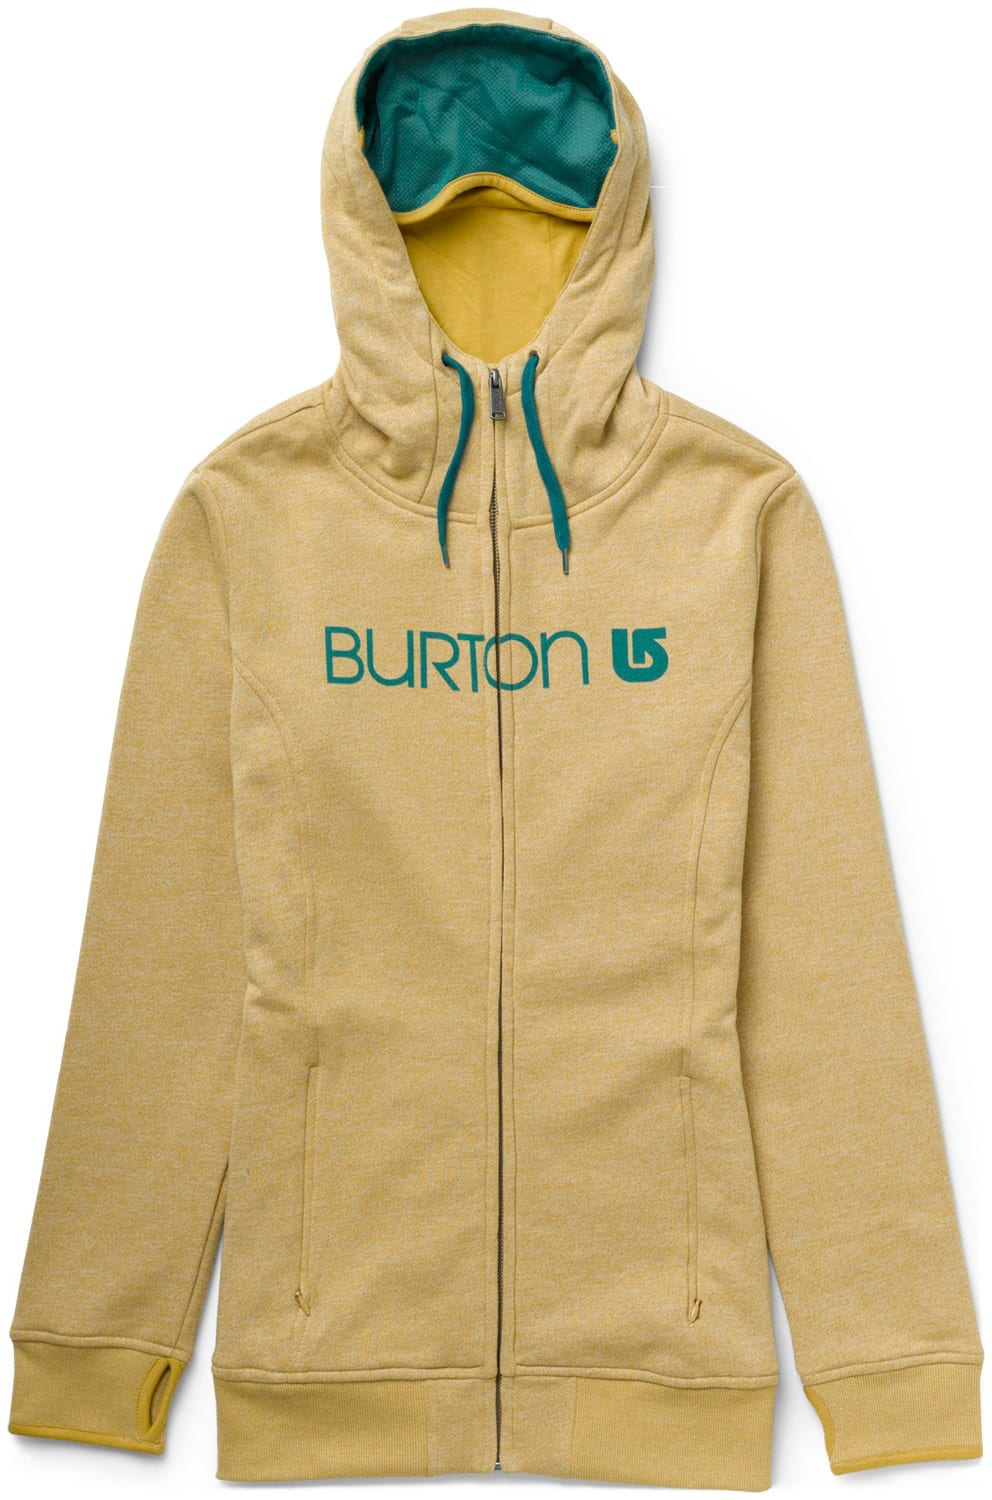 outlet burton zoom hoodies enlarge sleeper evo premium zip hoodie size